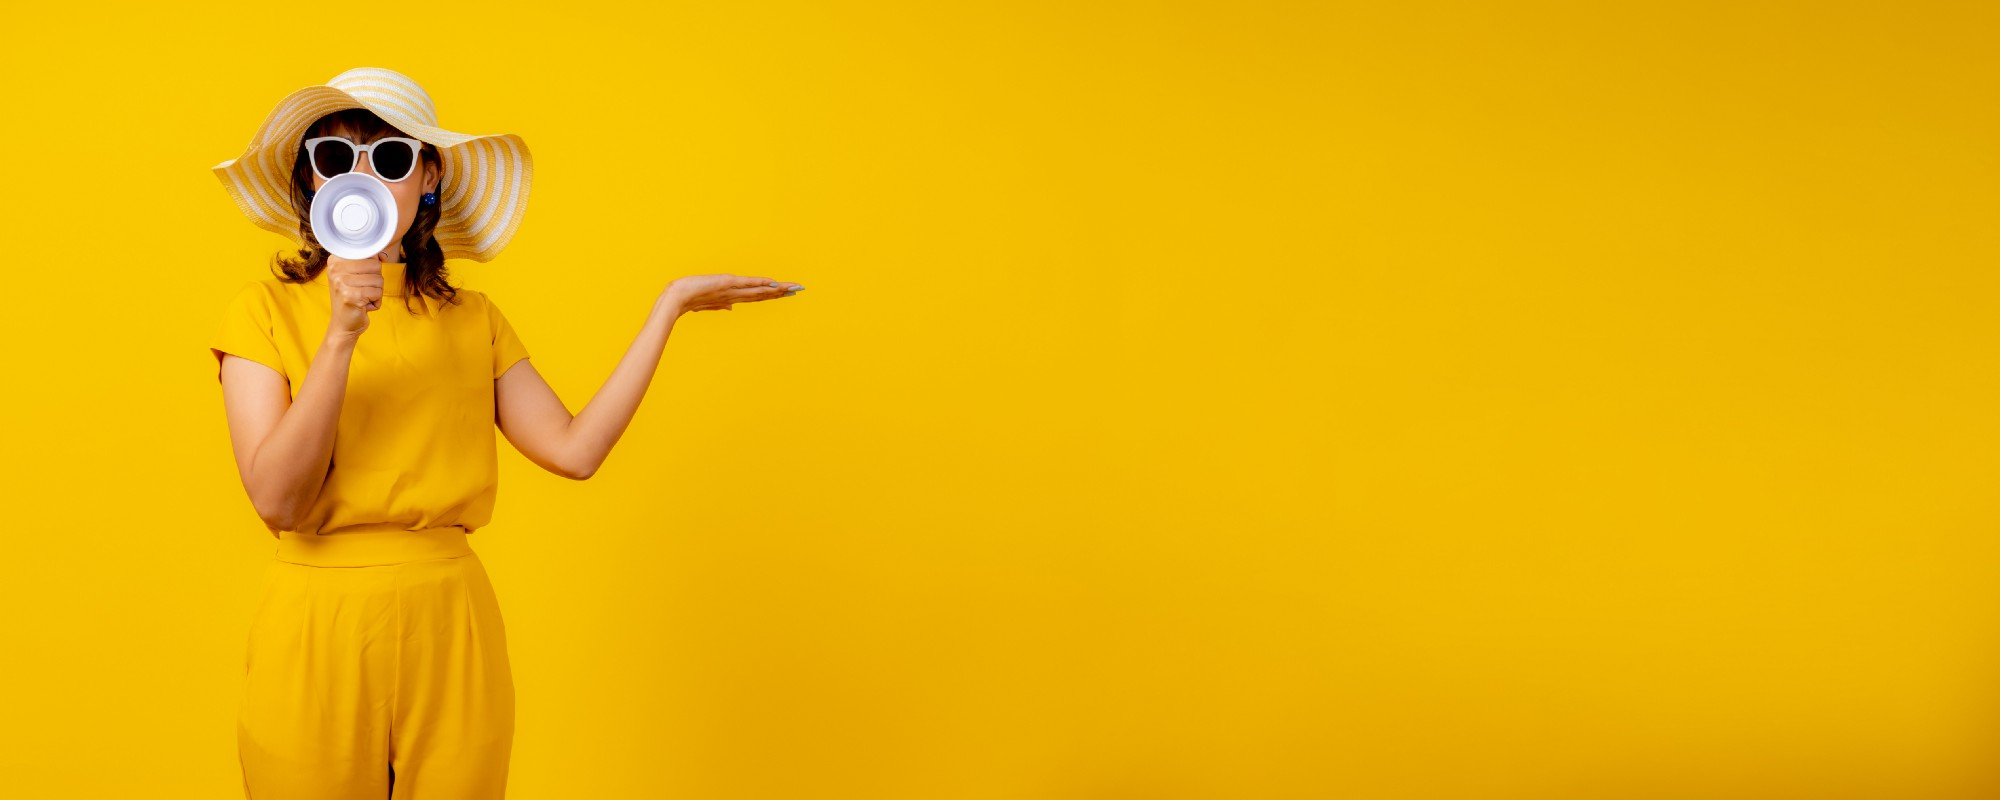 A lady with a handheld loudspeaker against a yellow background